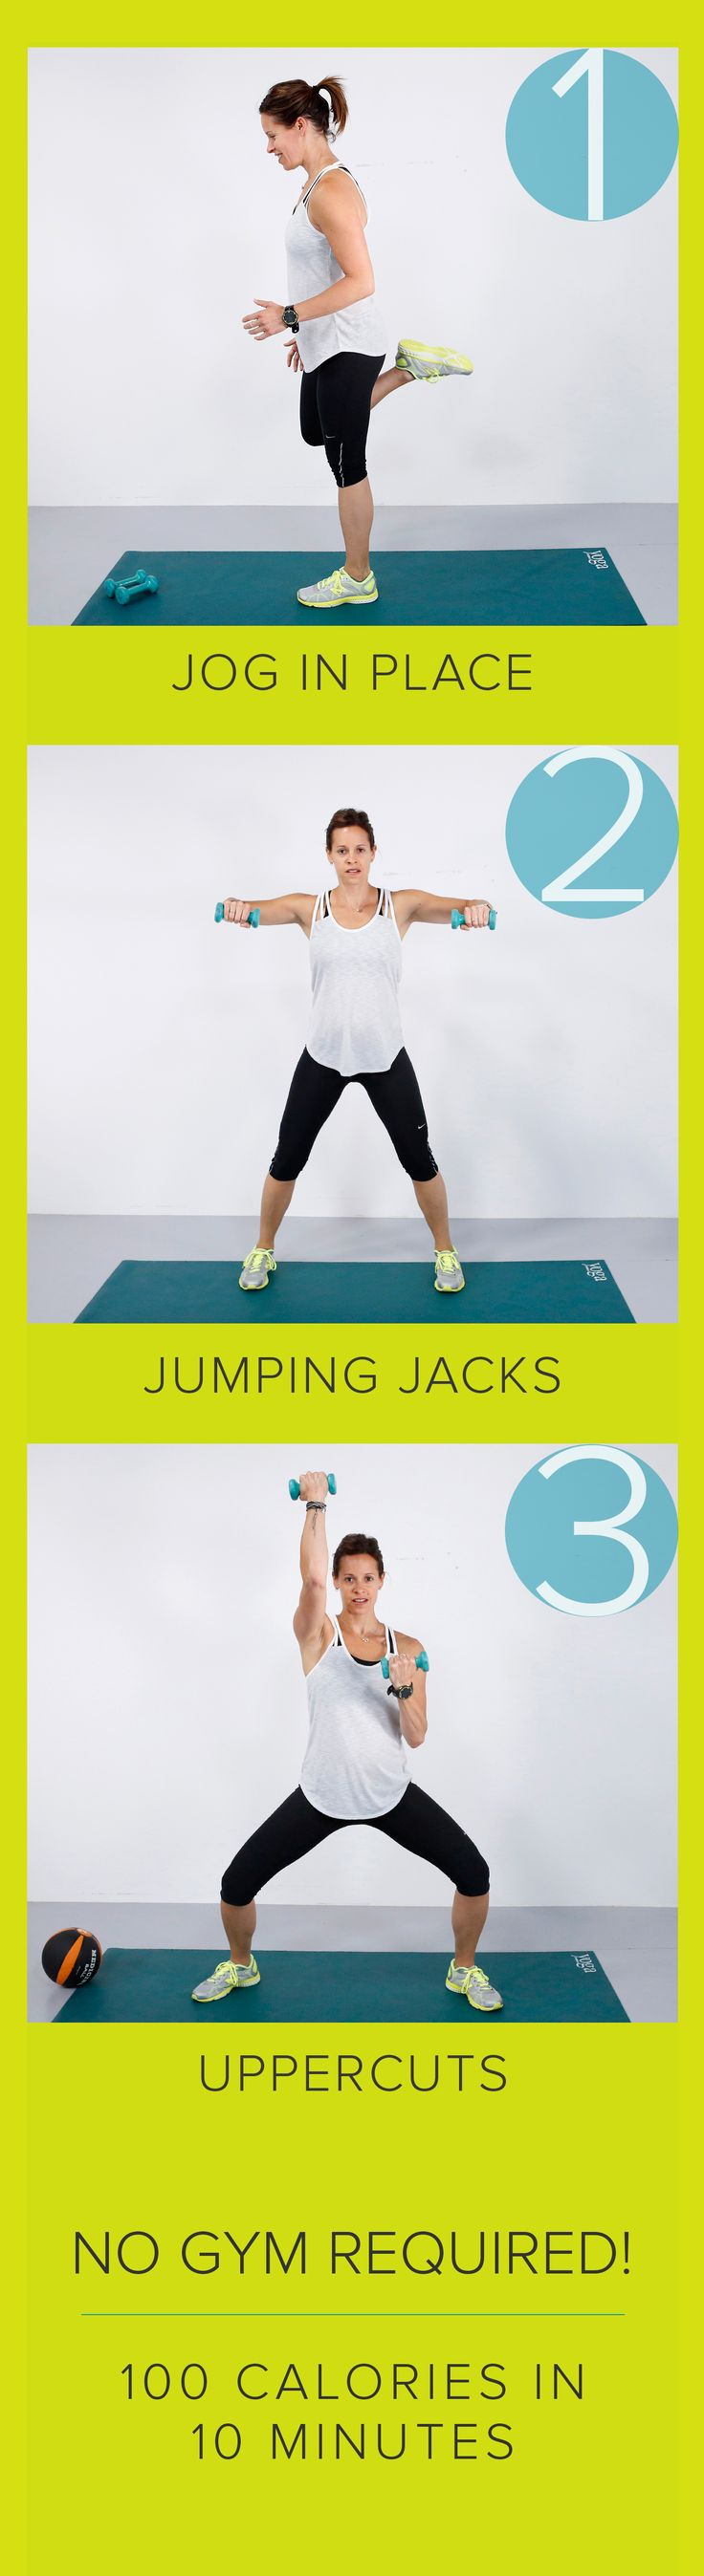 Burn 100 calories in 10 minutes: The fast total body workout you can do at home